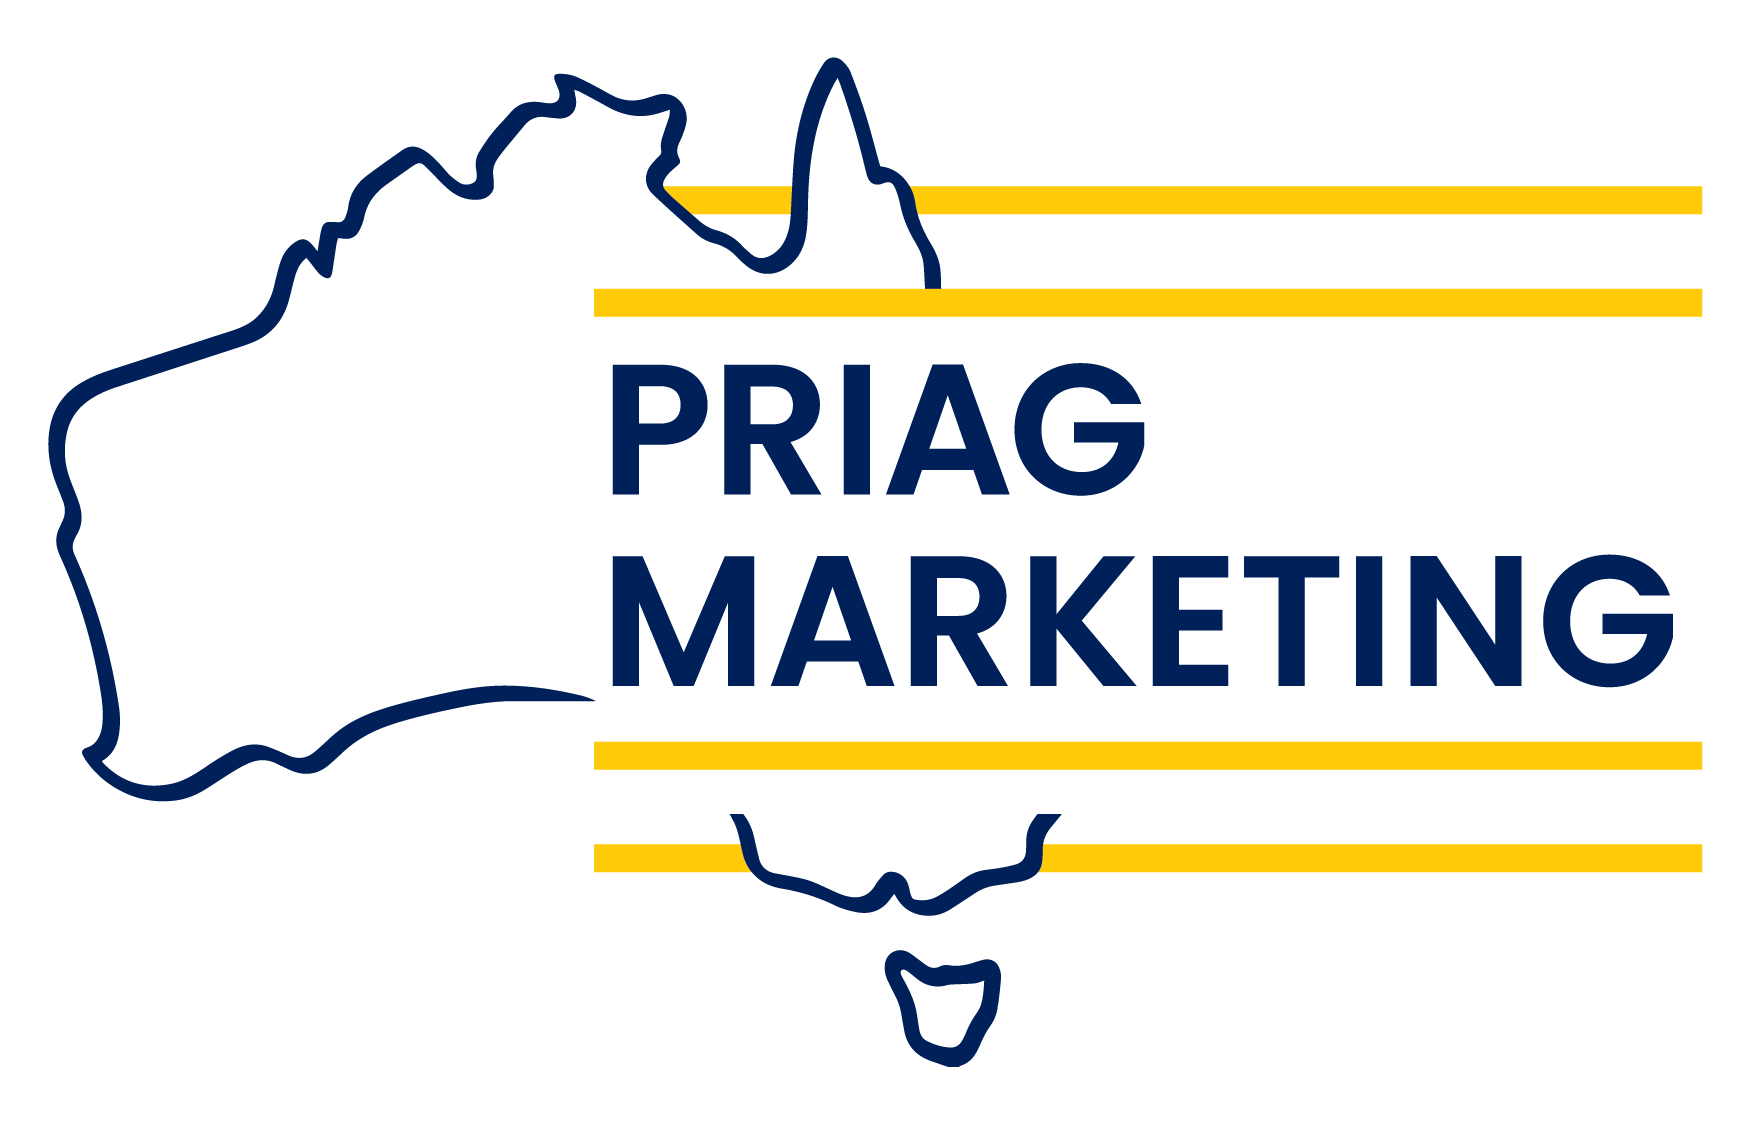 Priag Marketing